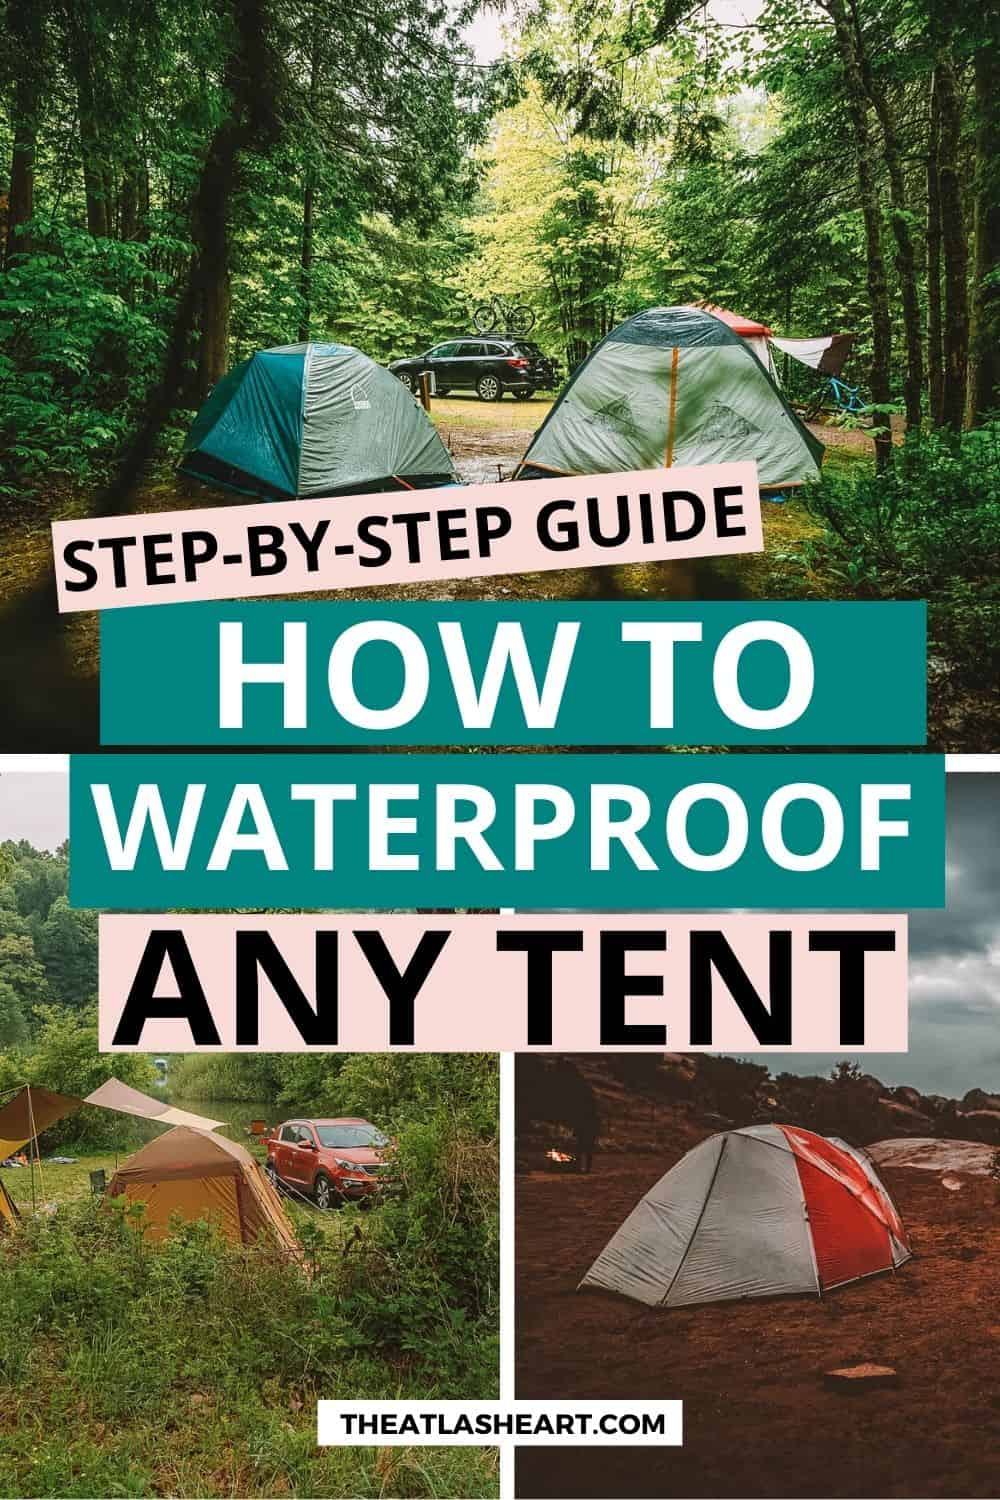 How to Waterproof a Tent: Step-By-Step Guide to Waterproofing